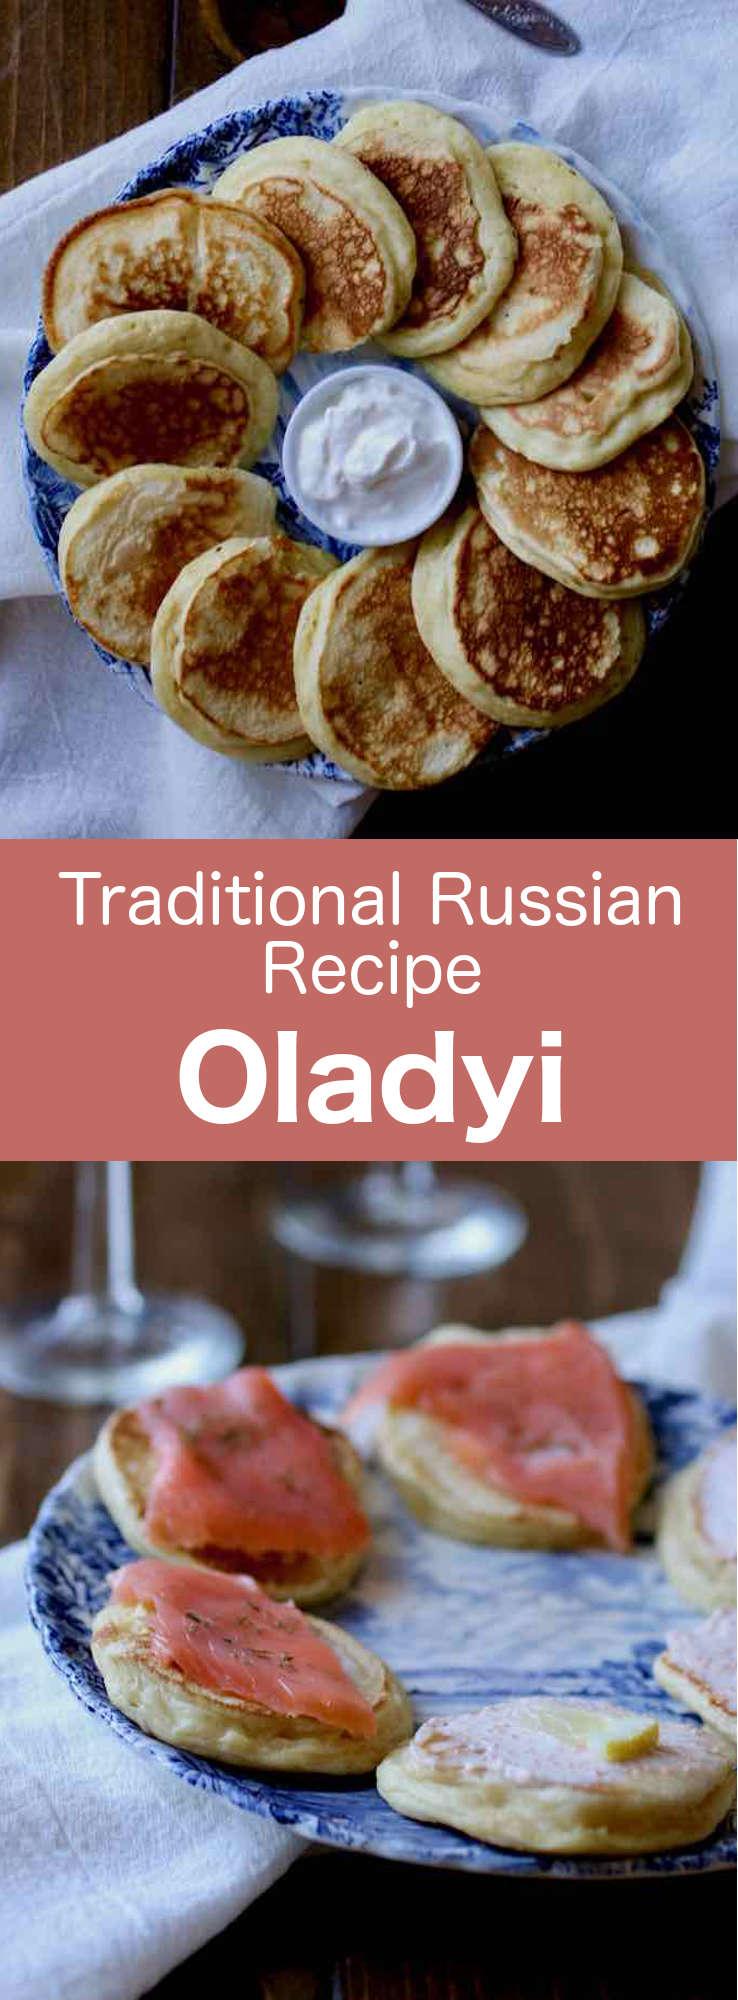 Oladyi are small thick pancakes, traditional in Russian, Ukrainian and Belarusian cuisines. They are served with smetana, varenye, jam, powidl or honey. #Russia #Ukraine #Belarus #RussianFood #RussianCuisine #RussianRecipe #UkrainianFood #UkrainianCuisine #UkrainianRecipe #EasternEuropeanCuisine #EasternEuropeanFood #EasternEuropeanRecipe #WorldCuisine #196flavors